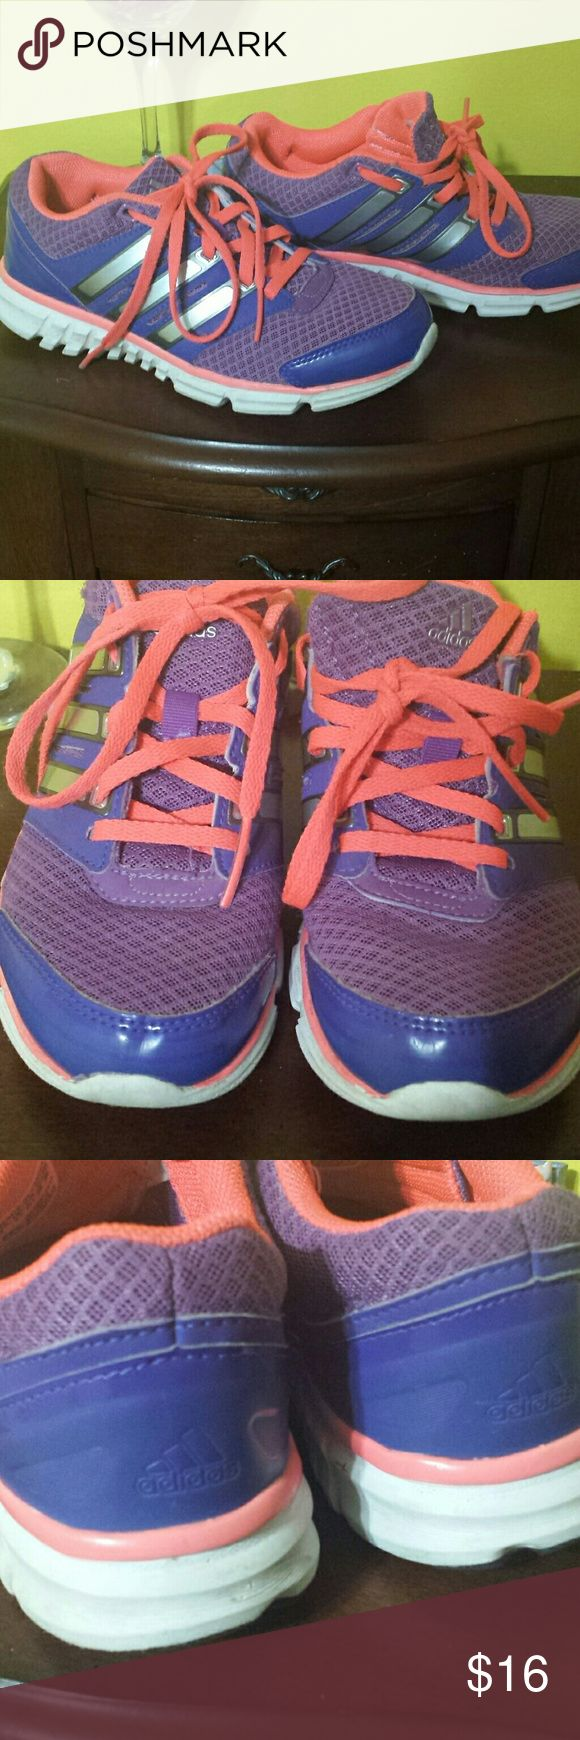 Adidas tennis shoe Pink and purple Adidas size 2 kids shoe. Gently used. In good condition. Adidas Shoes Sneakers